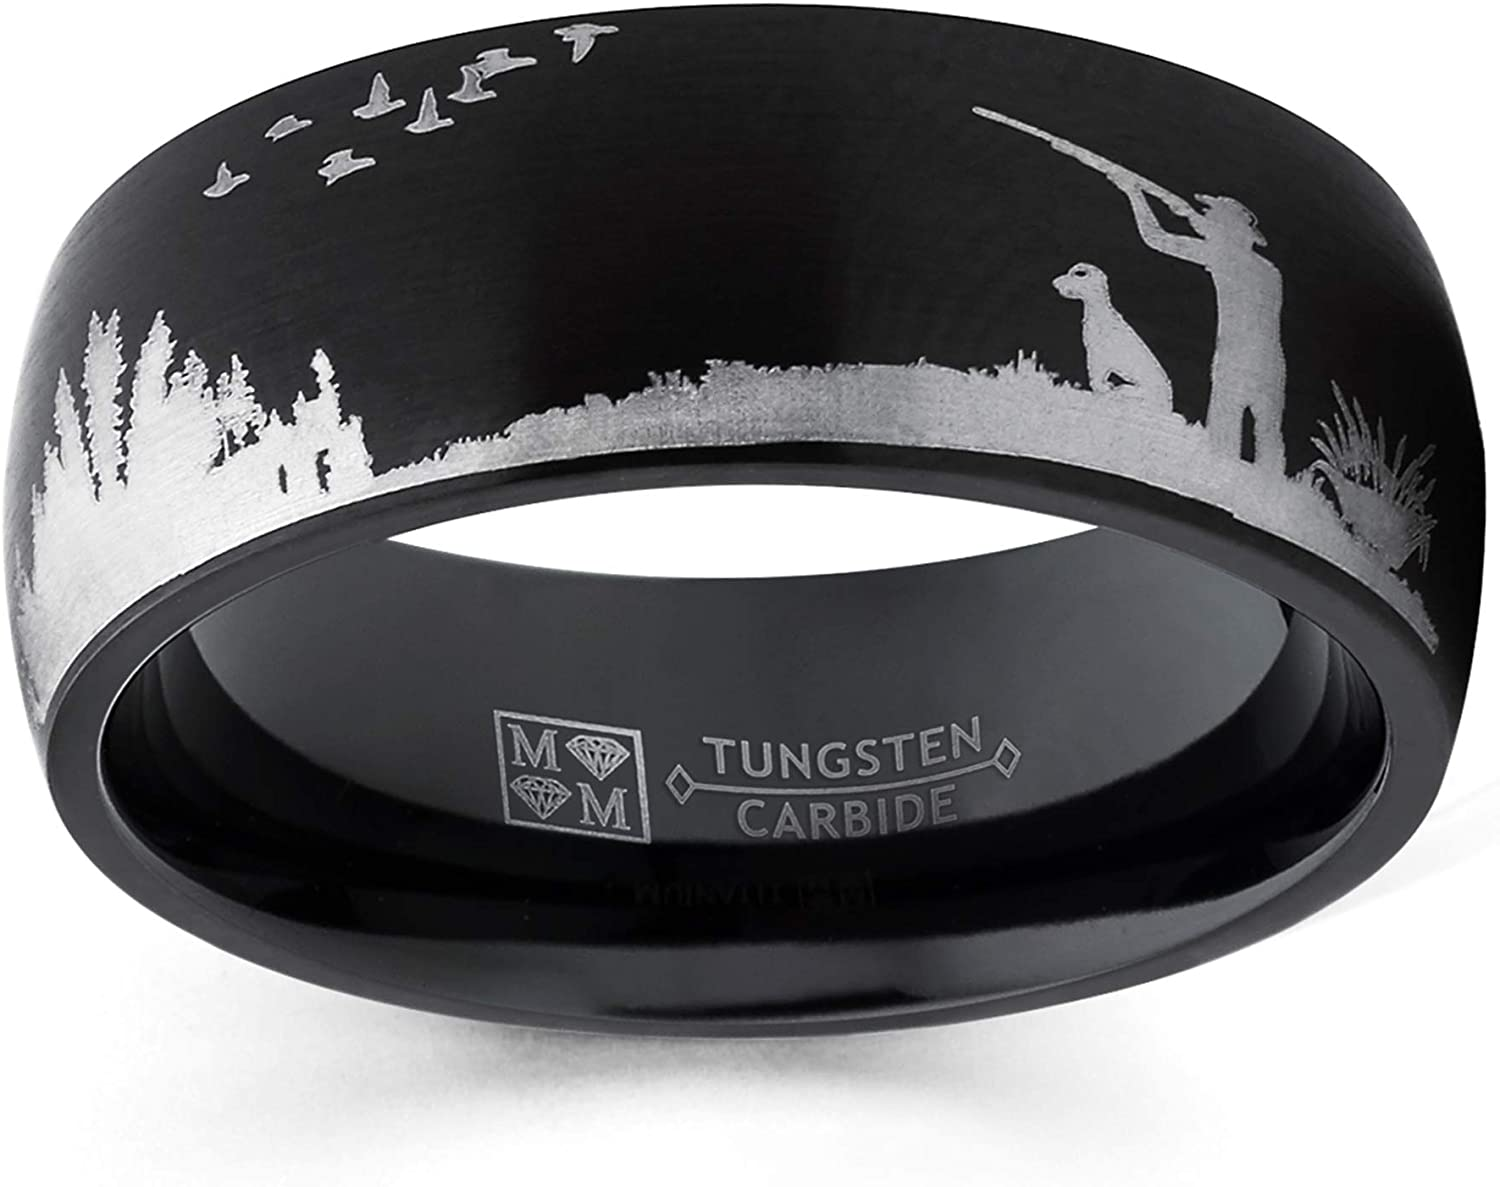 Metal Masters Co. Men's Black Tungsten Carbide Ring Wedding Band Bird Duck Hunting Outdoor Ring 8mm